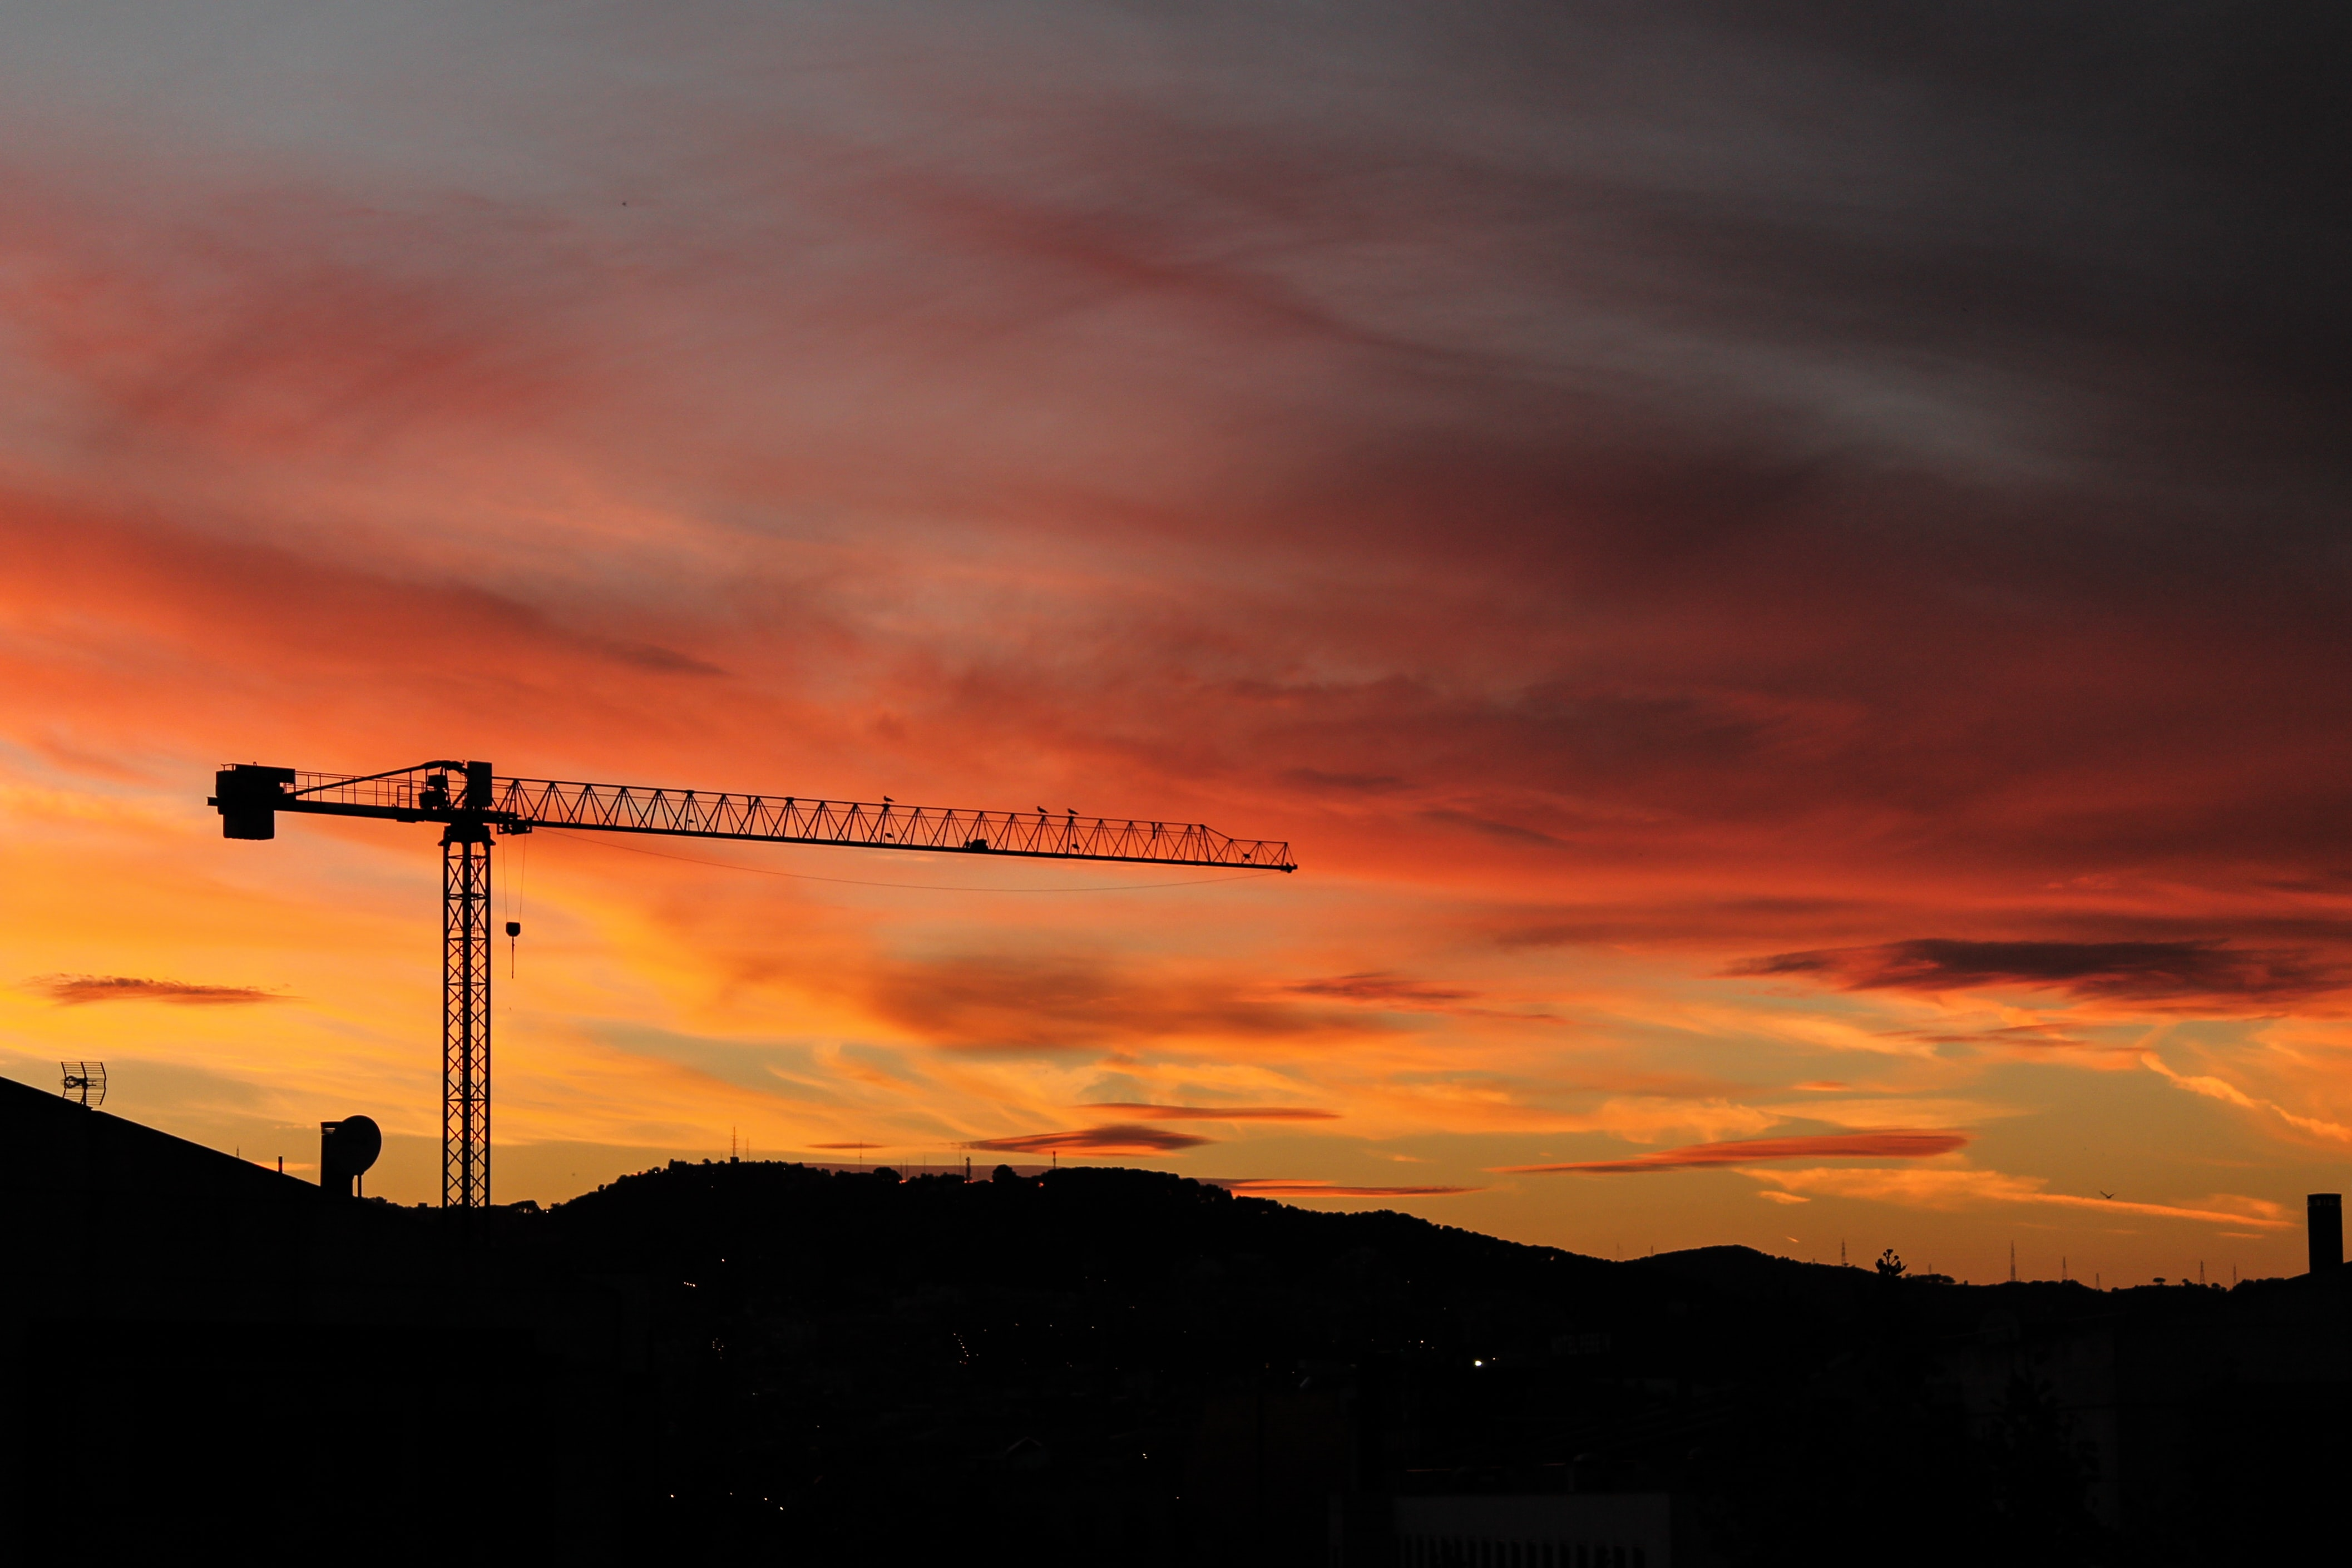 silhouette of crane and hill under cloudy sky photo taken during sunset